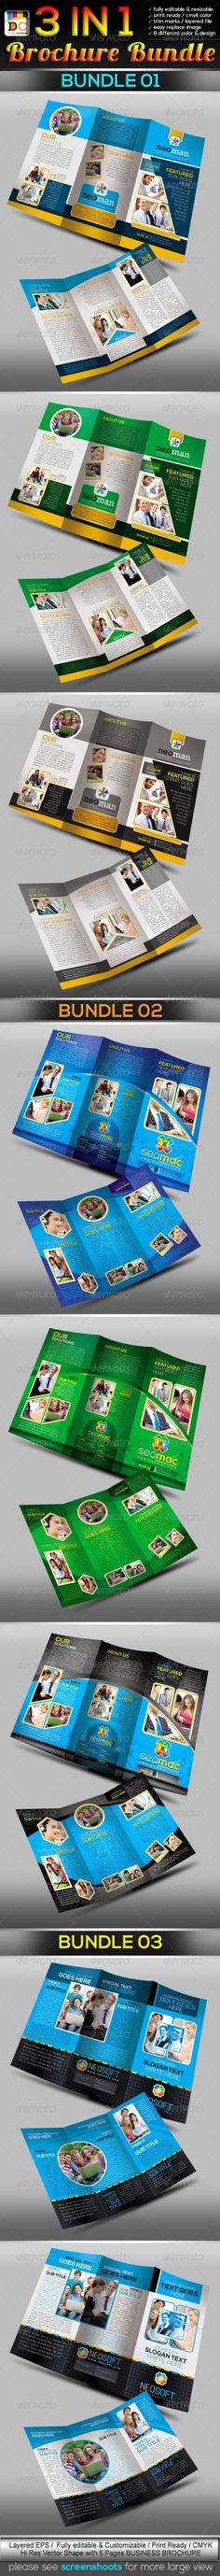 3 in 1: Corporate Tri-fold Business Brochure Bundl  #GraphicRiver            3 in 1: Corporate Tri-fold Business Brochure Bundle 210×297mm print dimension with Bleed + Trim Mark, Well Layered Organised (EPS), 300DPI, CMYK , Print ready, 8 different Color With Design & Fully Editable, Text/fonts/colors editable, Very Easy to Customise & replace the model image.  Features  > This template is ideal for any business presentation.  > The style is unique, both dynamic and readable.  > Sample…